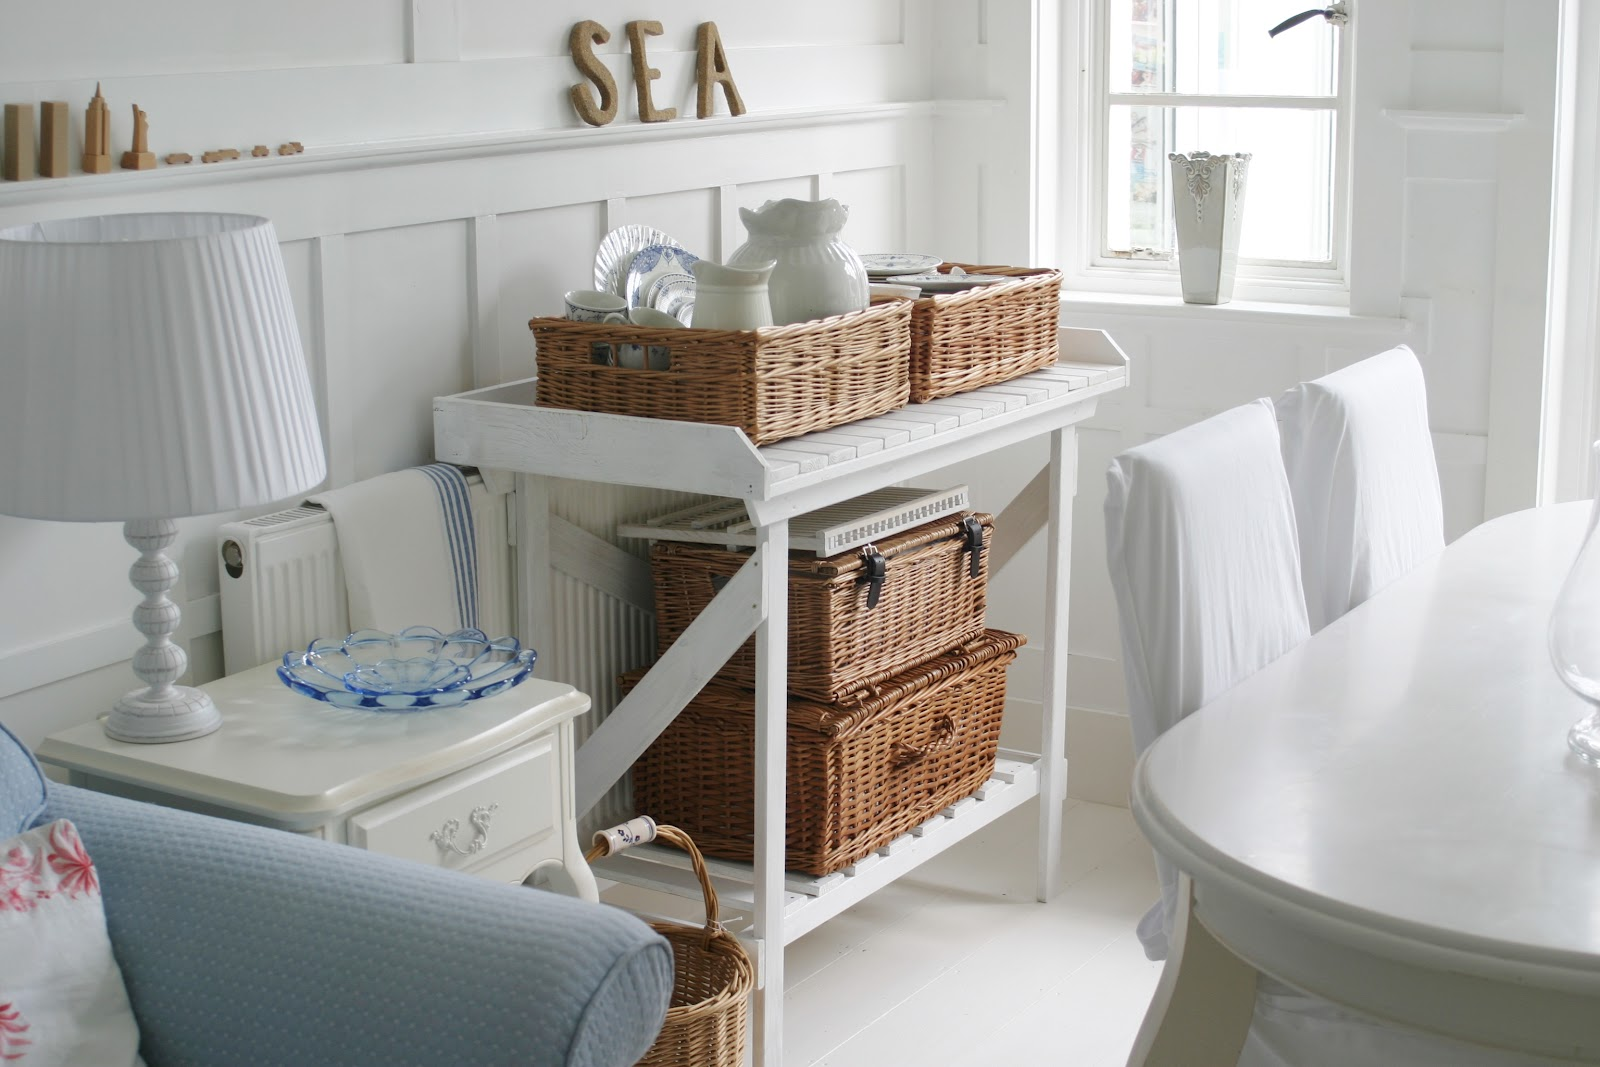 Homebase Bathroom Paint Tots 100 Homebase Storage Challenge After The White Approach